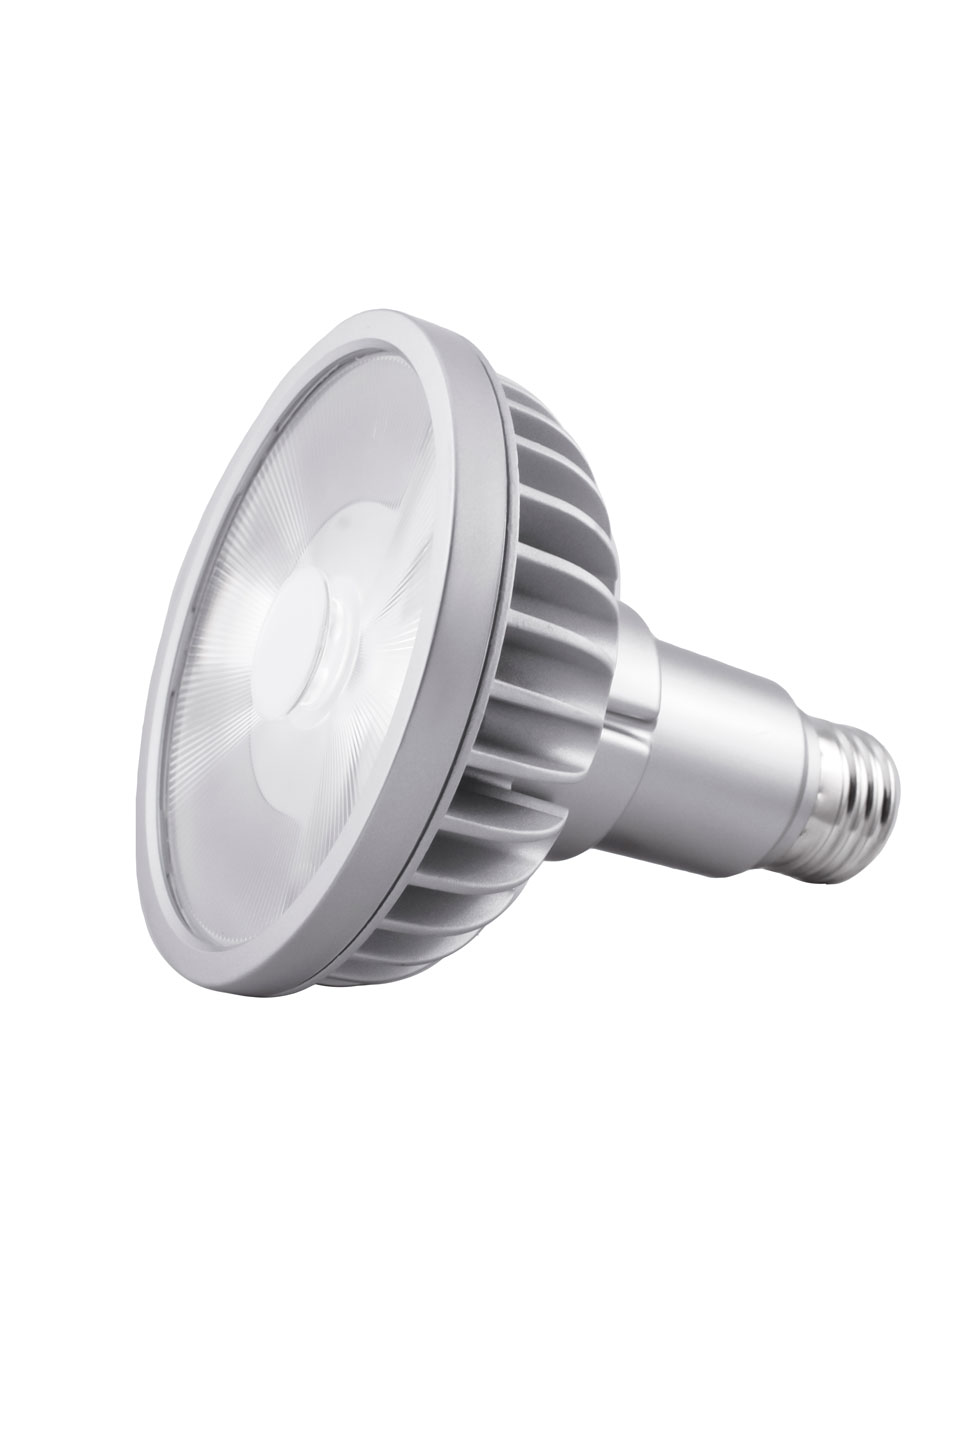 Dimmbare Led Spots Available In 9 25 And 36 Cri 95 930lm 230v